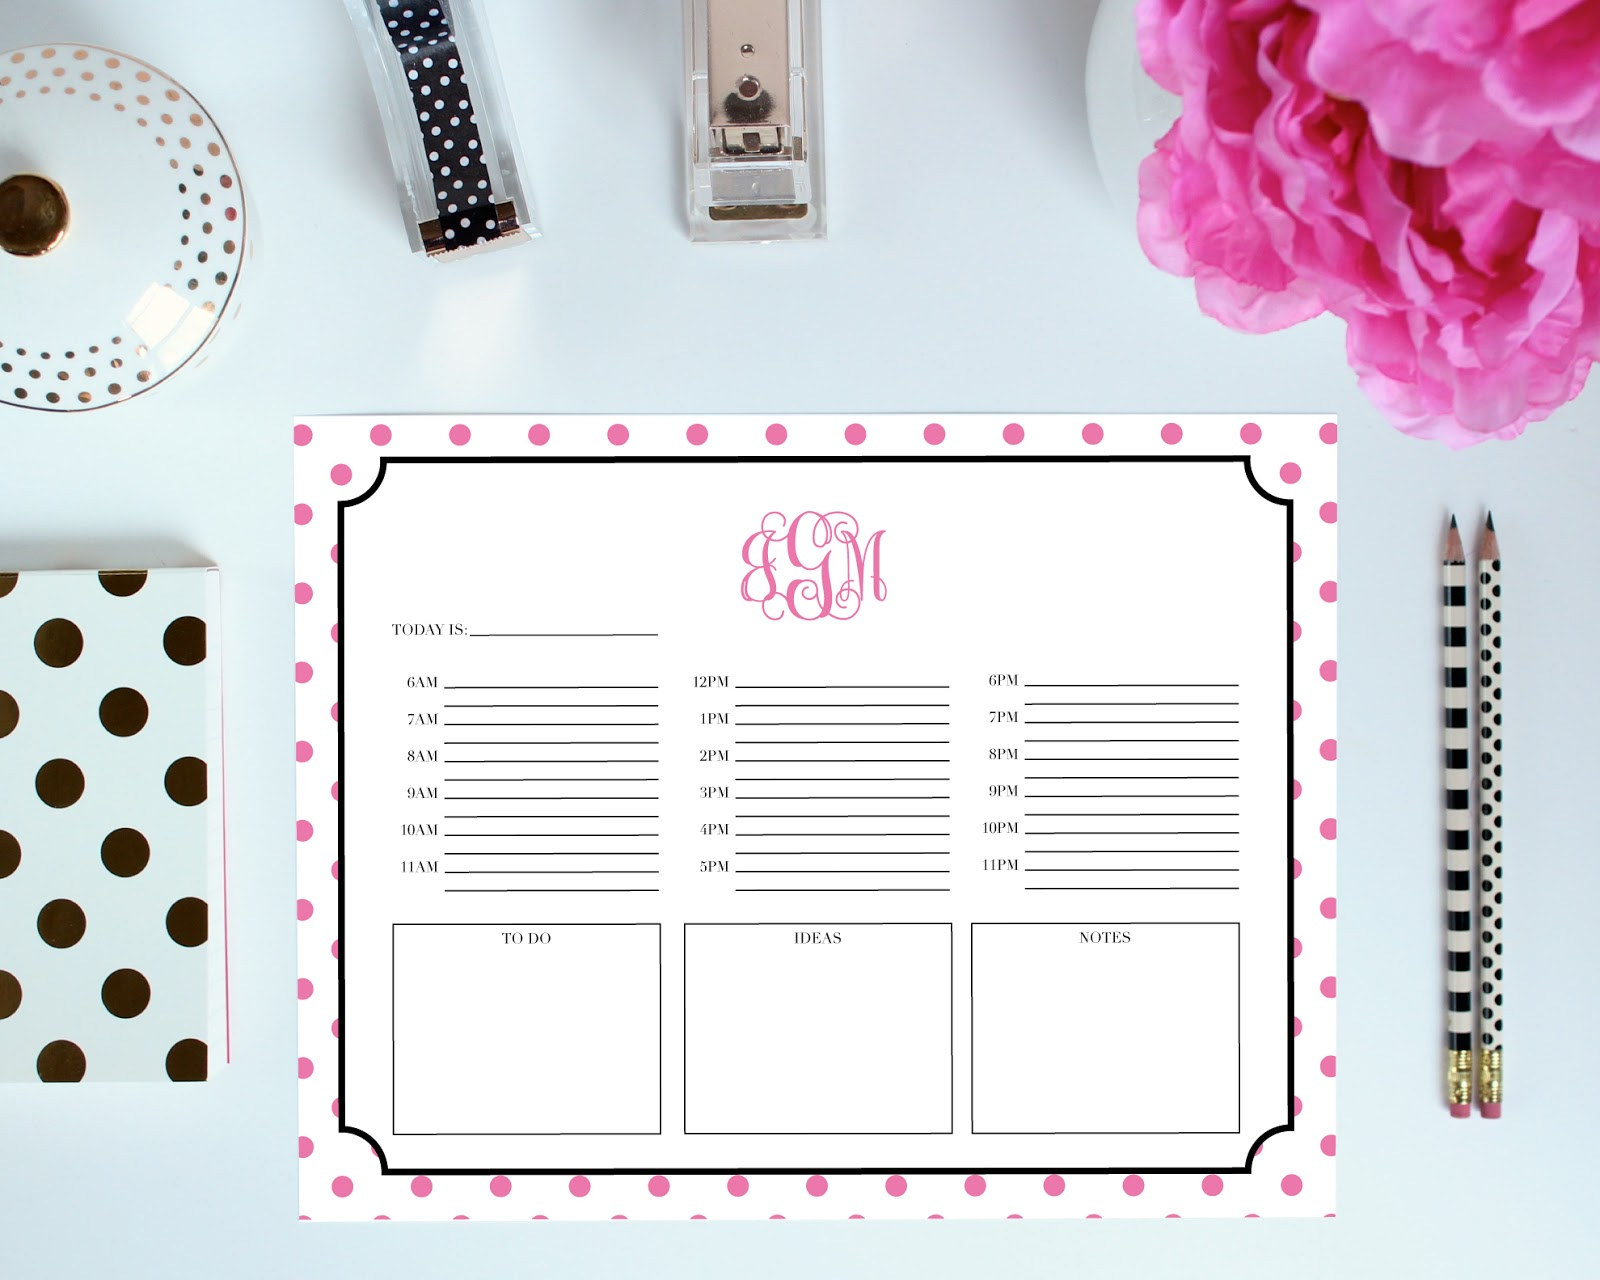 Day Layout - Printable Organization Pages can be customized with your monogram. You pick the colors, frame, font, and more!